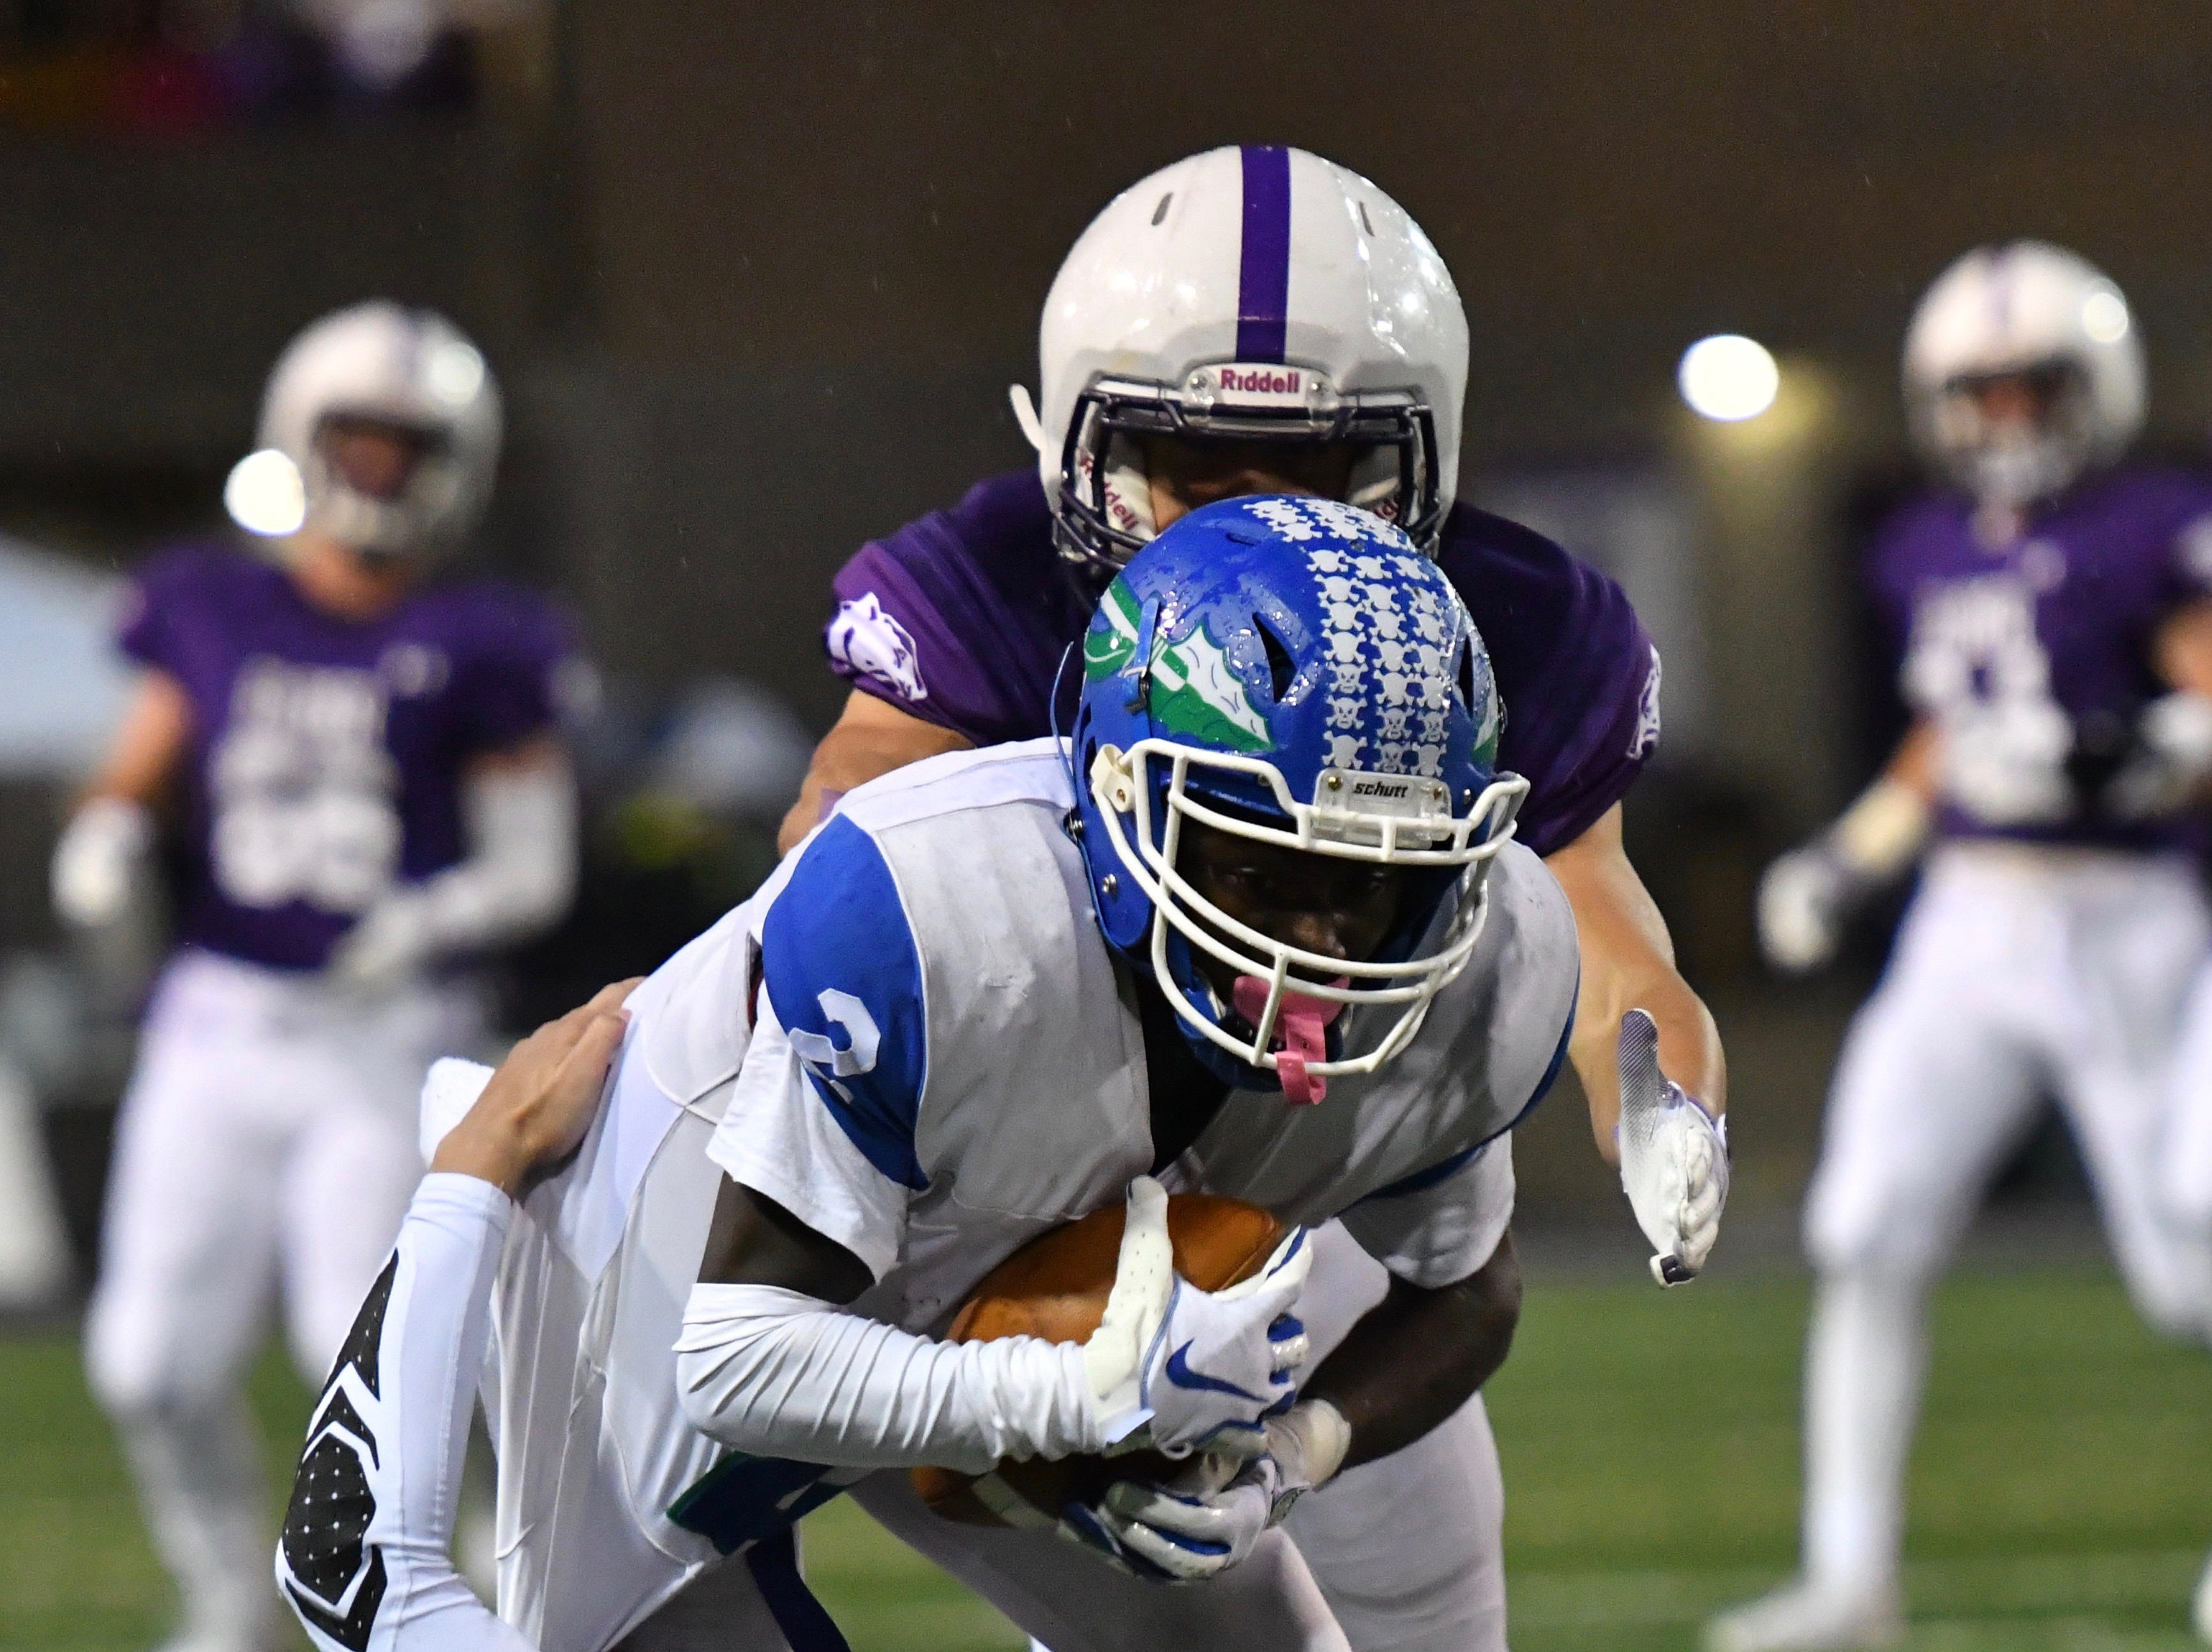 Winton Woods' Raequan Prince runs over an Elder defender for a first down Friday, Oct. 12, 2018.